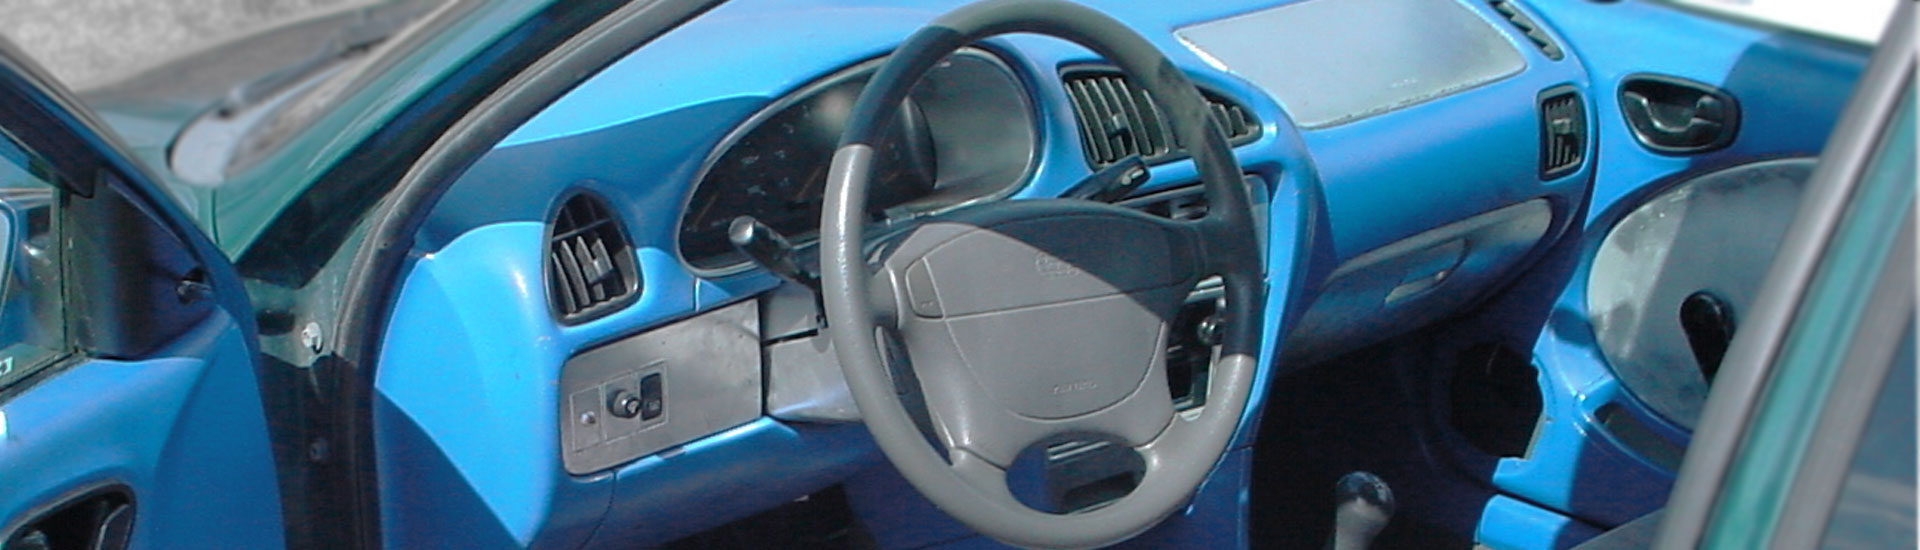 Geo Metro Dash Kits Custom Geo Metro Dash Kit